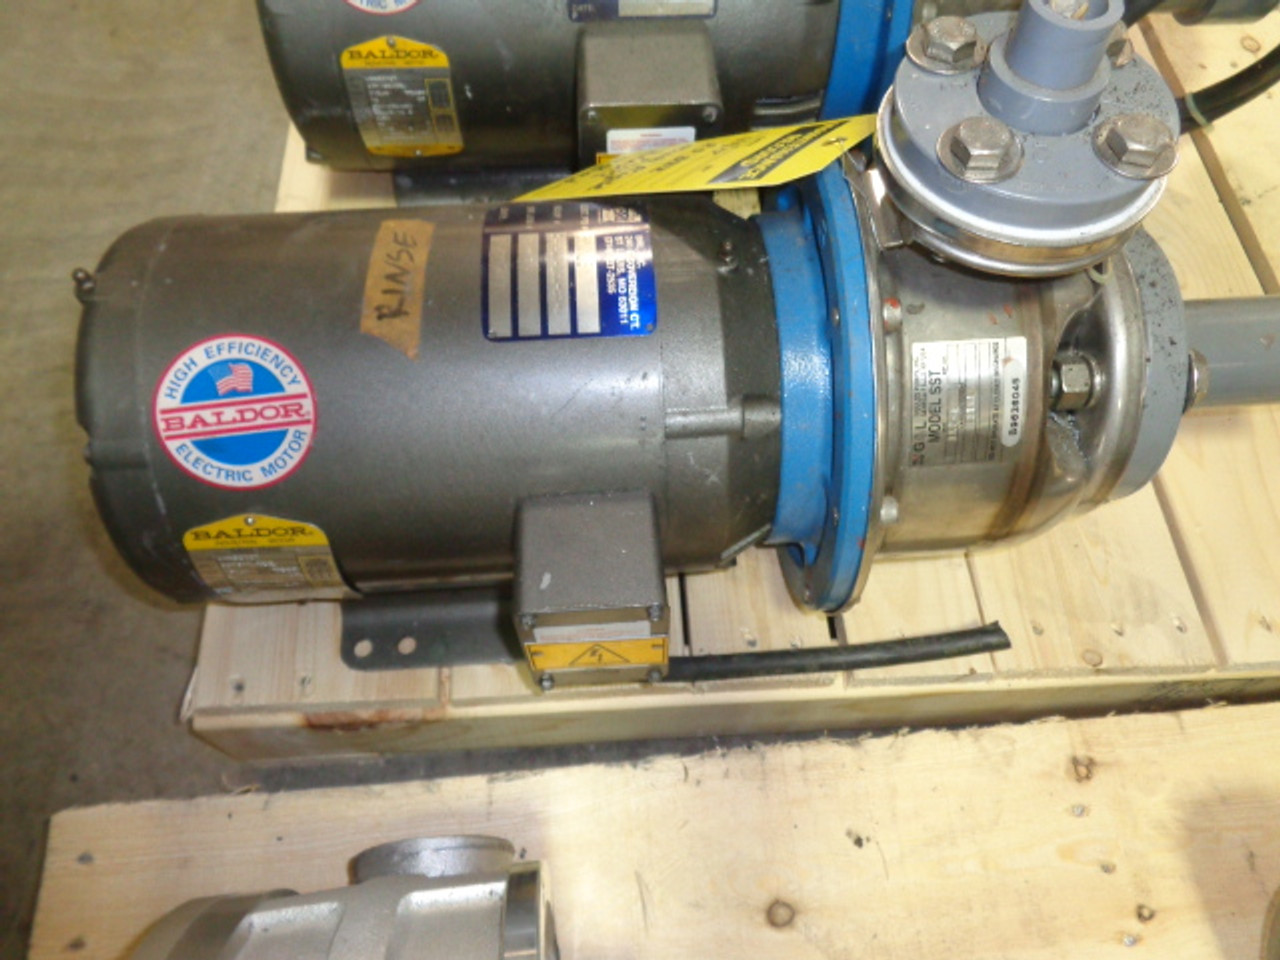 Baldor JMM3212T Motor with Blower